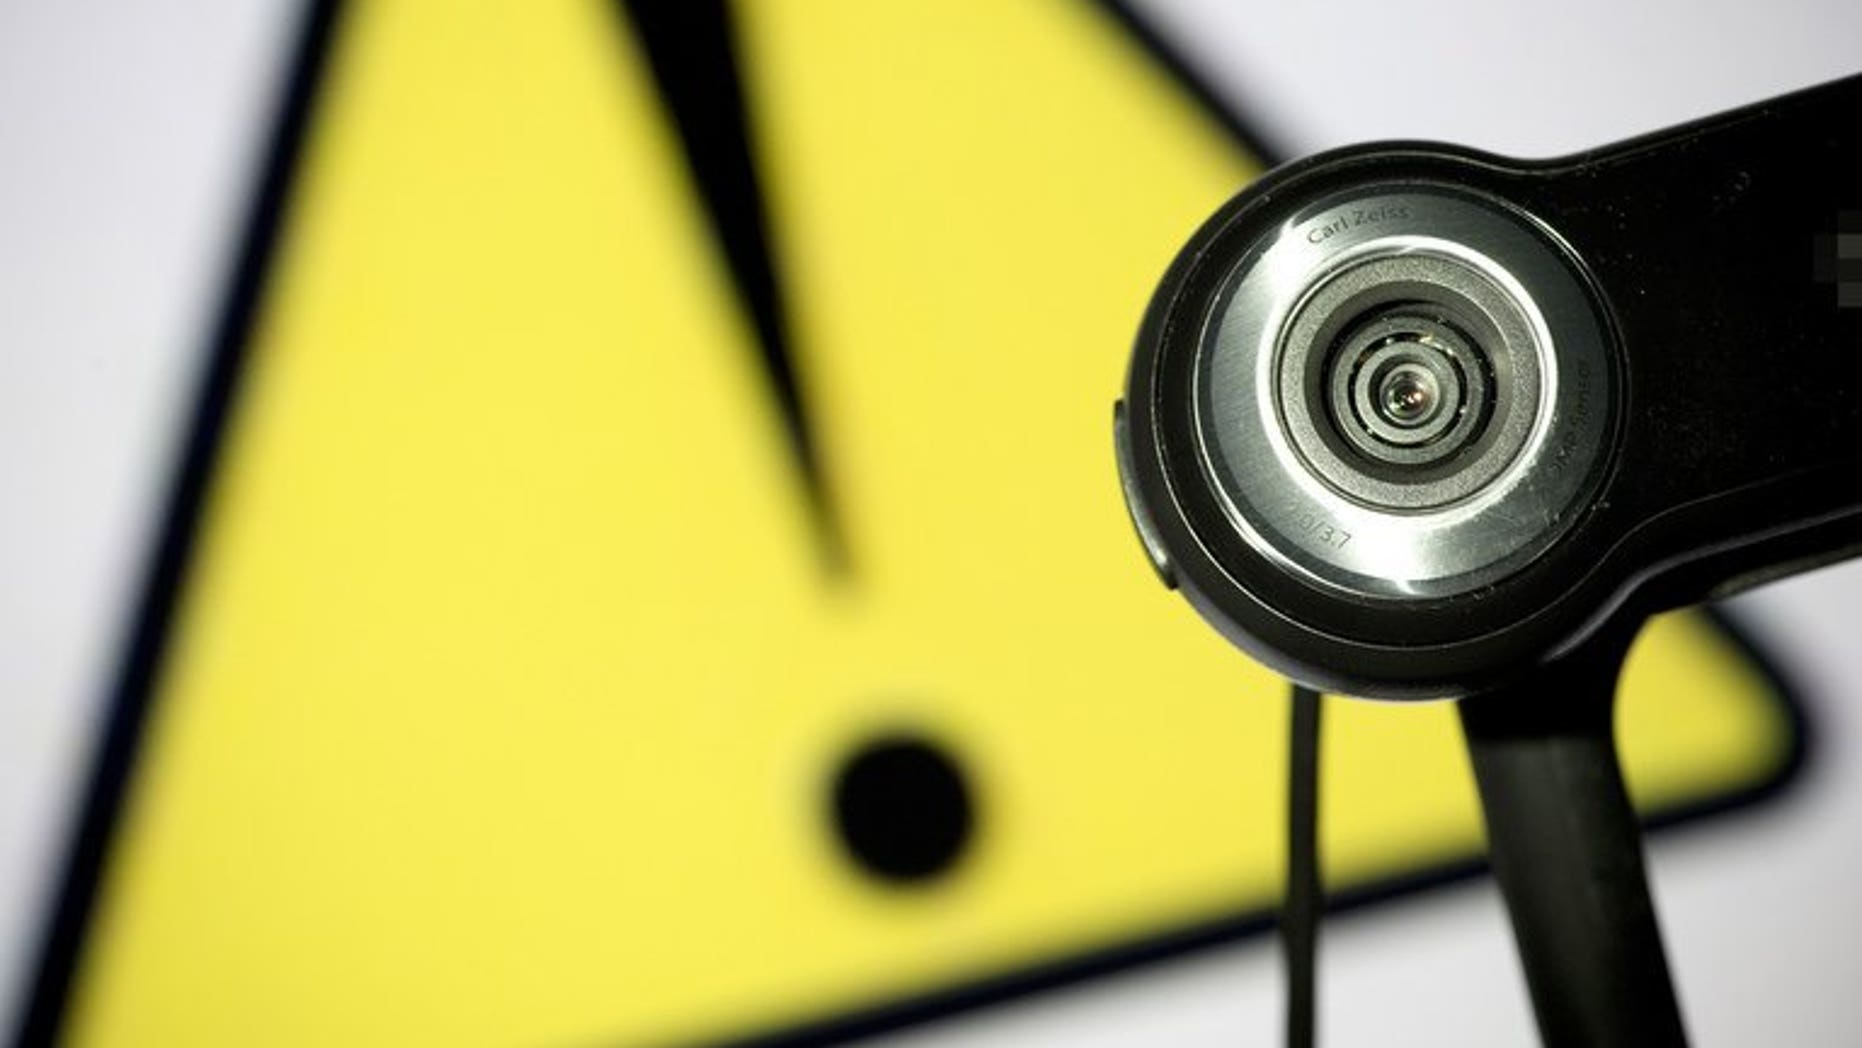 This file illustration photo shows a webcam positioned in front of a danger sign. Two Canadian men were charged Friday in the distribution of child pornography linked to the suicide of a girl who killed herself after months of cyber-bullying, following a sexual assault.